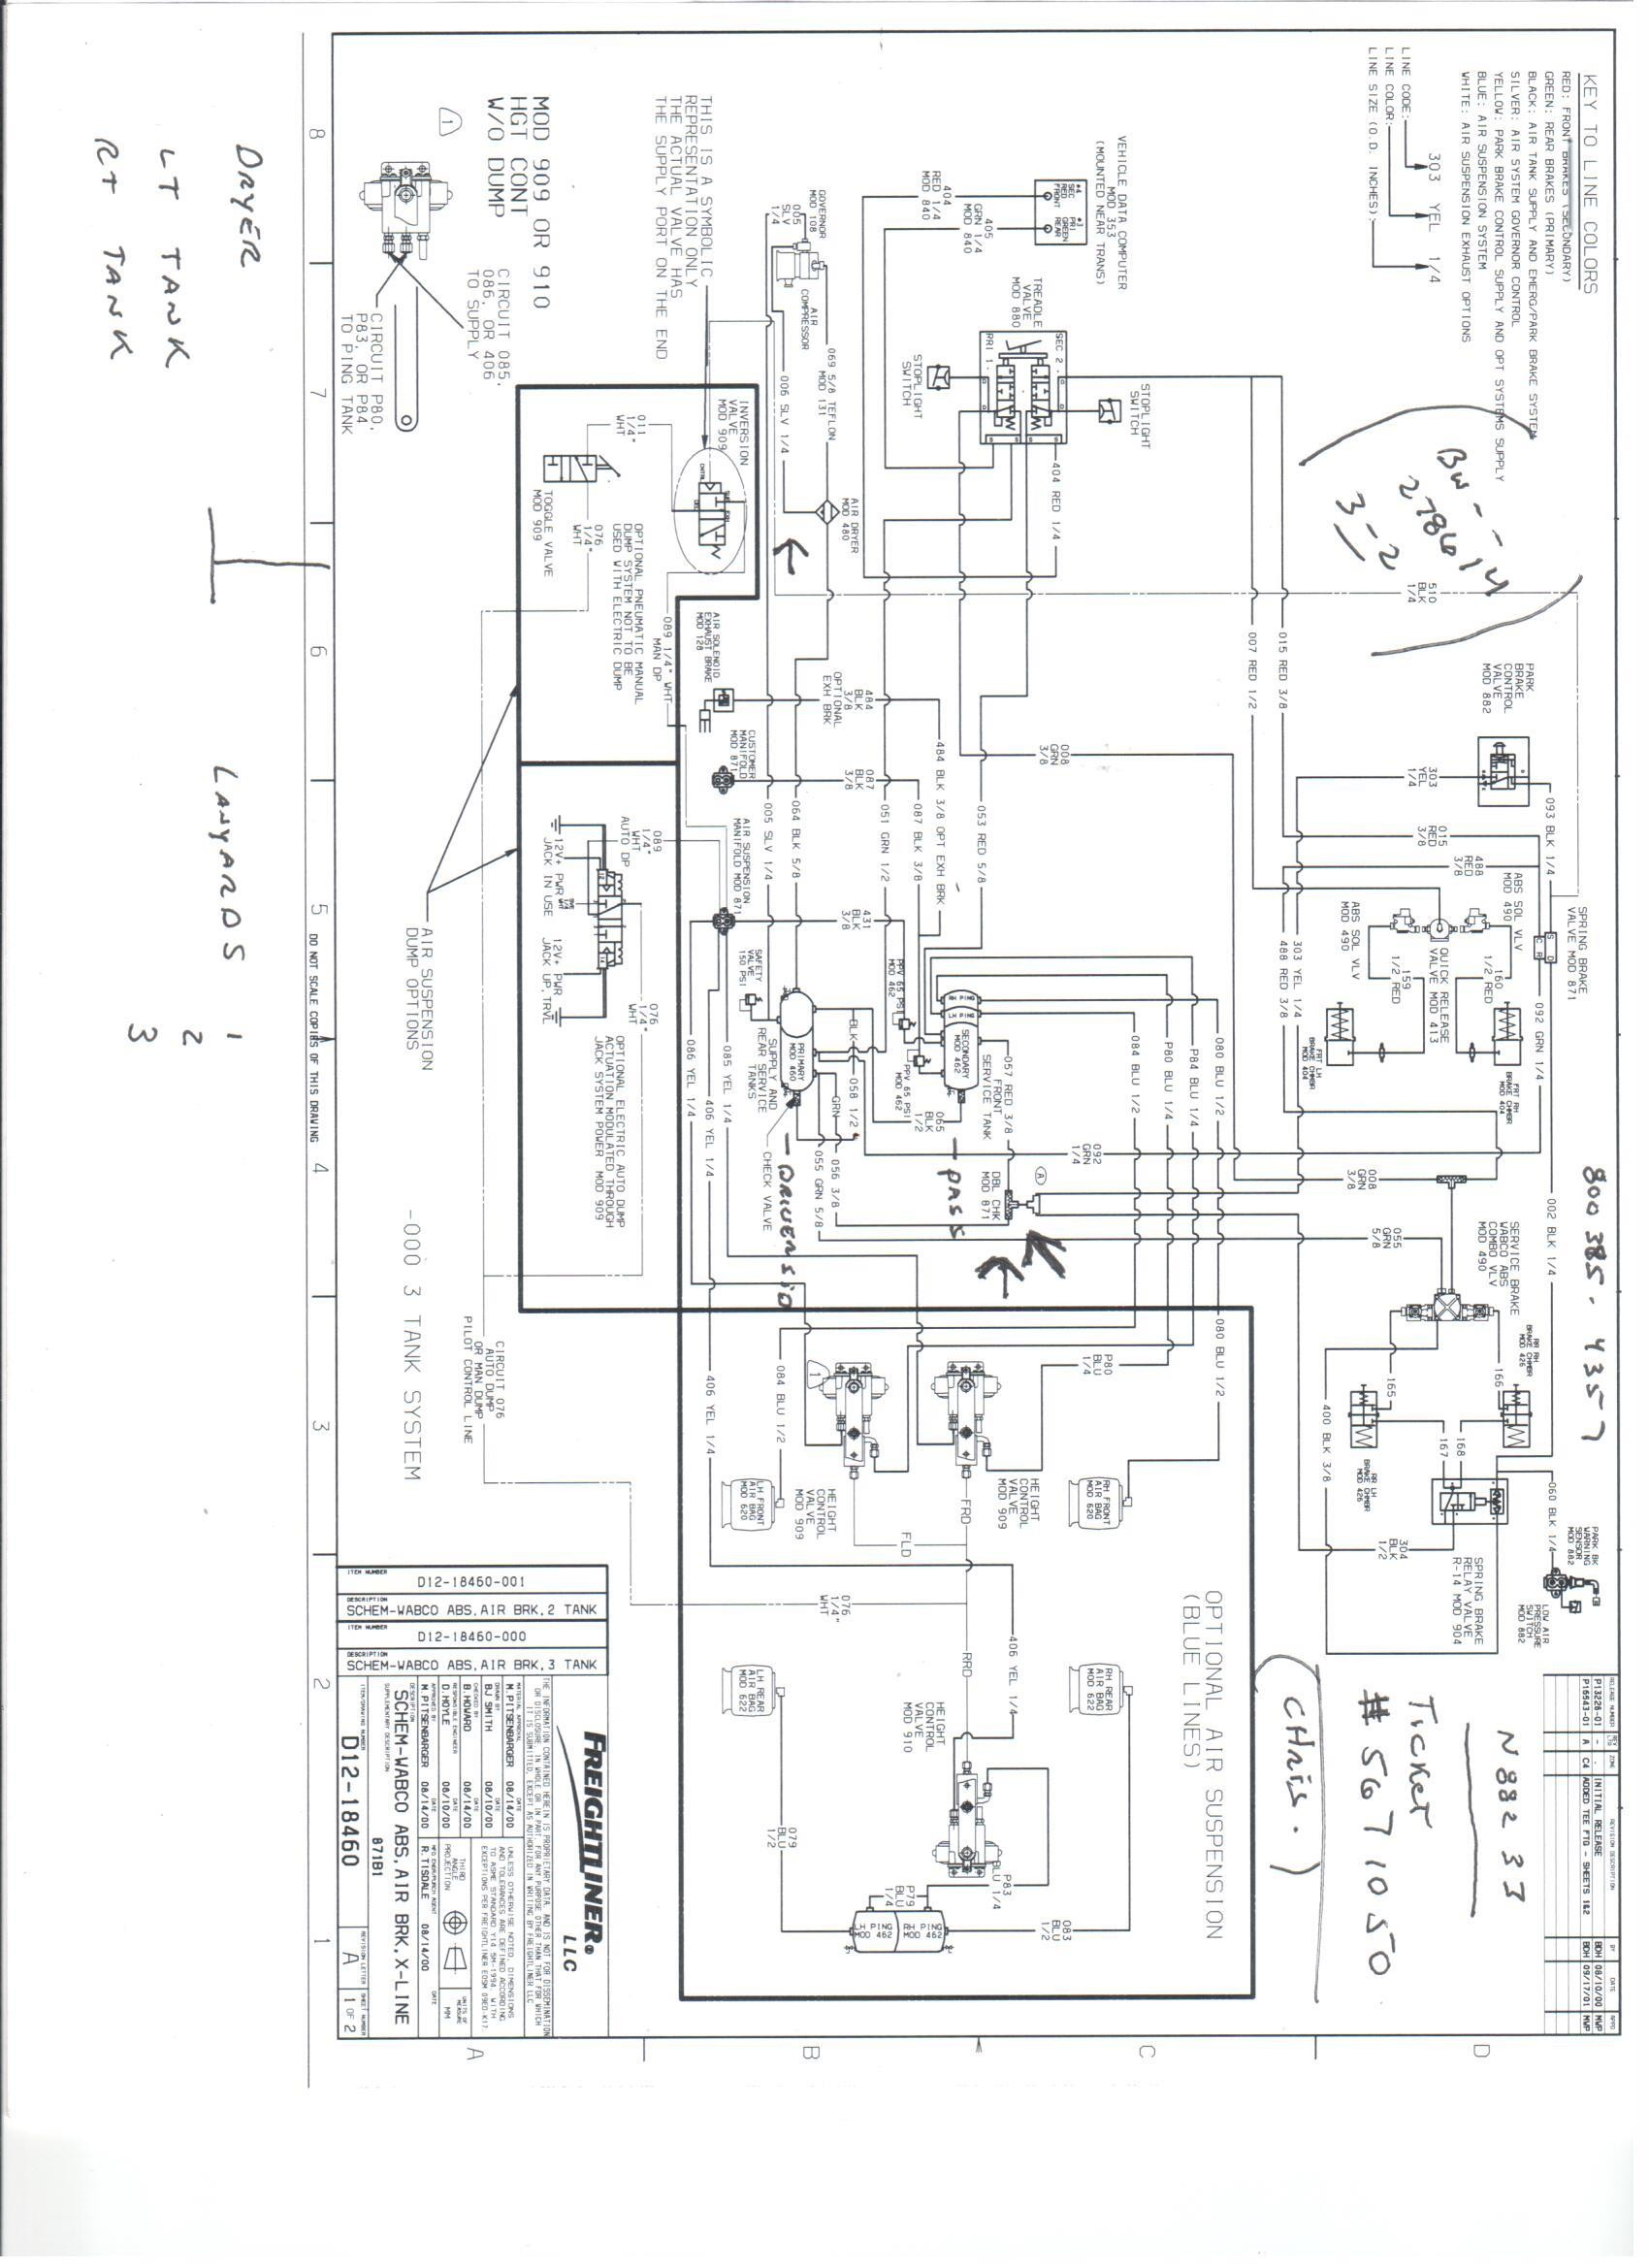 Tiffin Allegro Bus Wiring Diagram Trusted Diagrams Gulf Stream Motorhome Library Of U2022